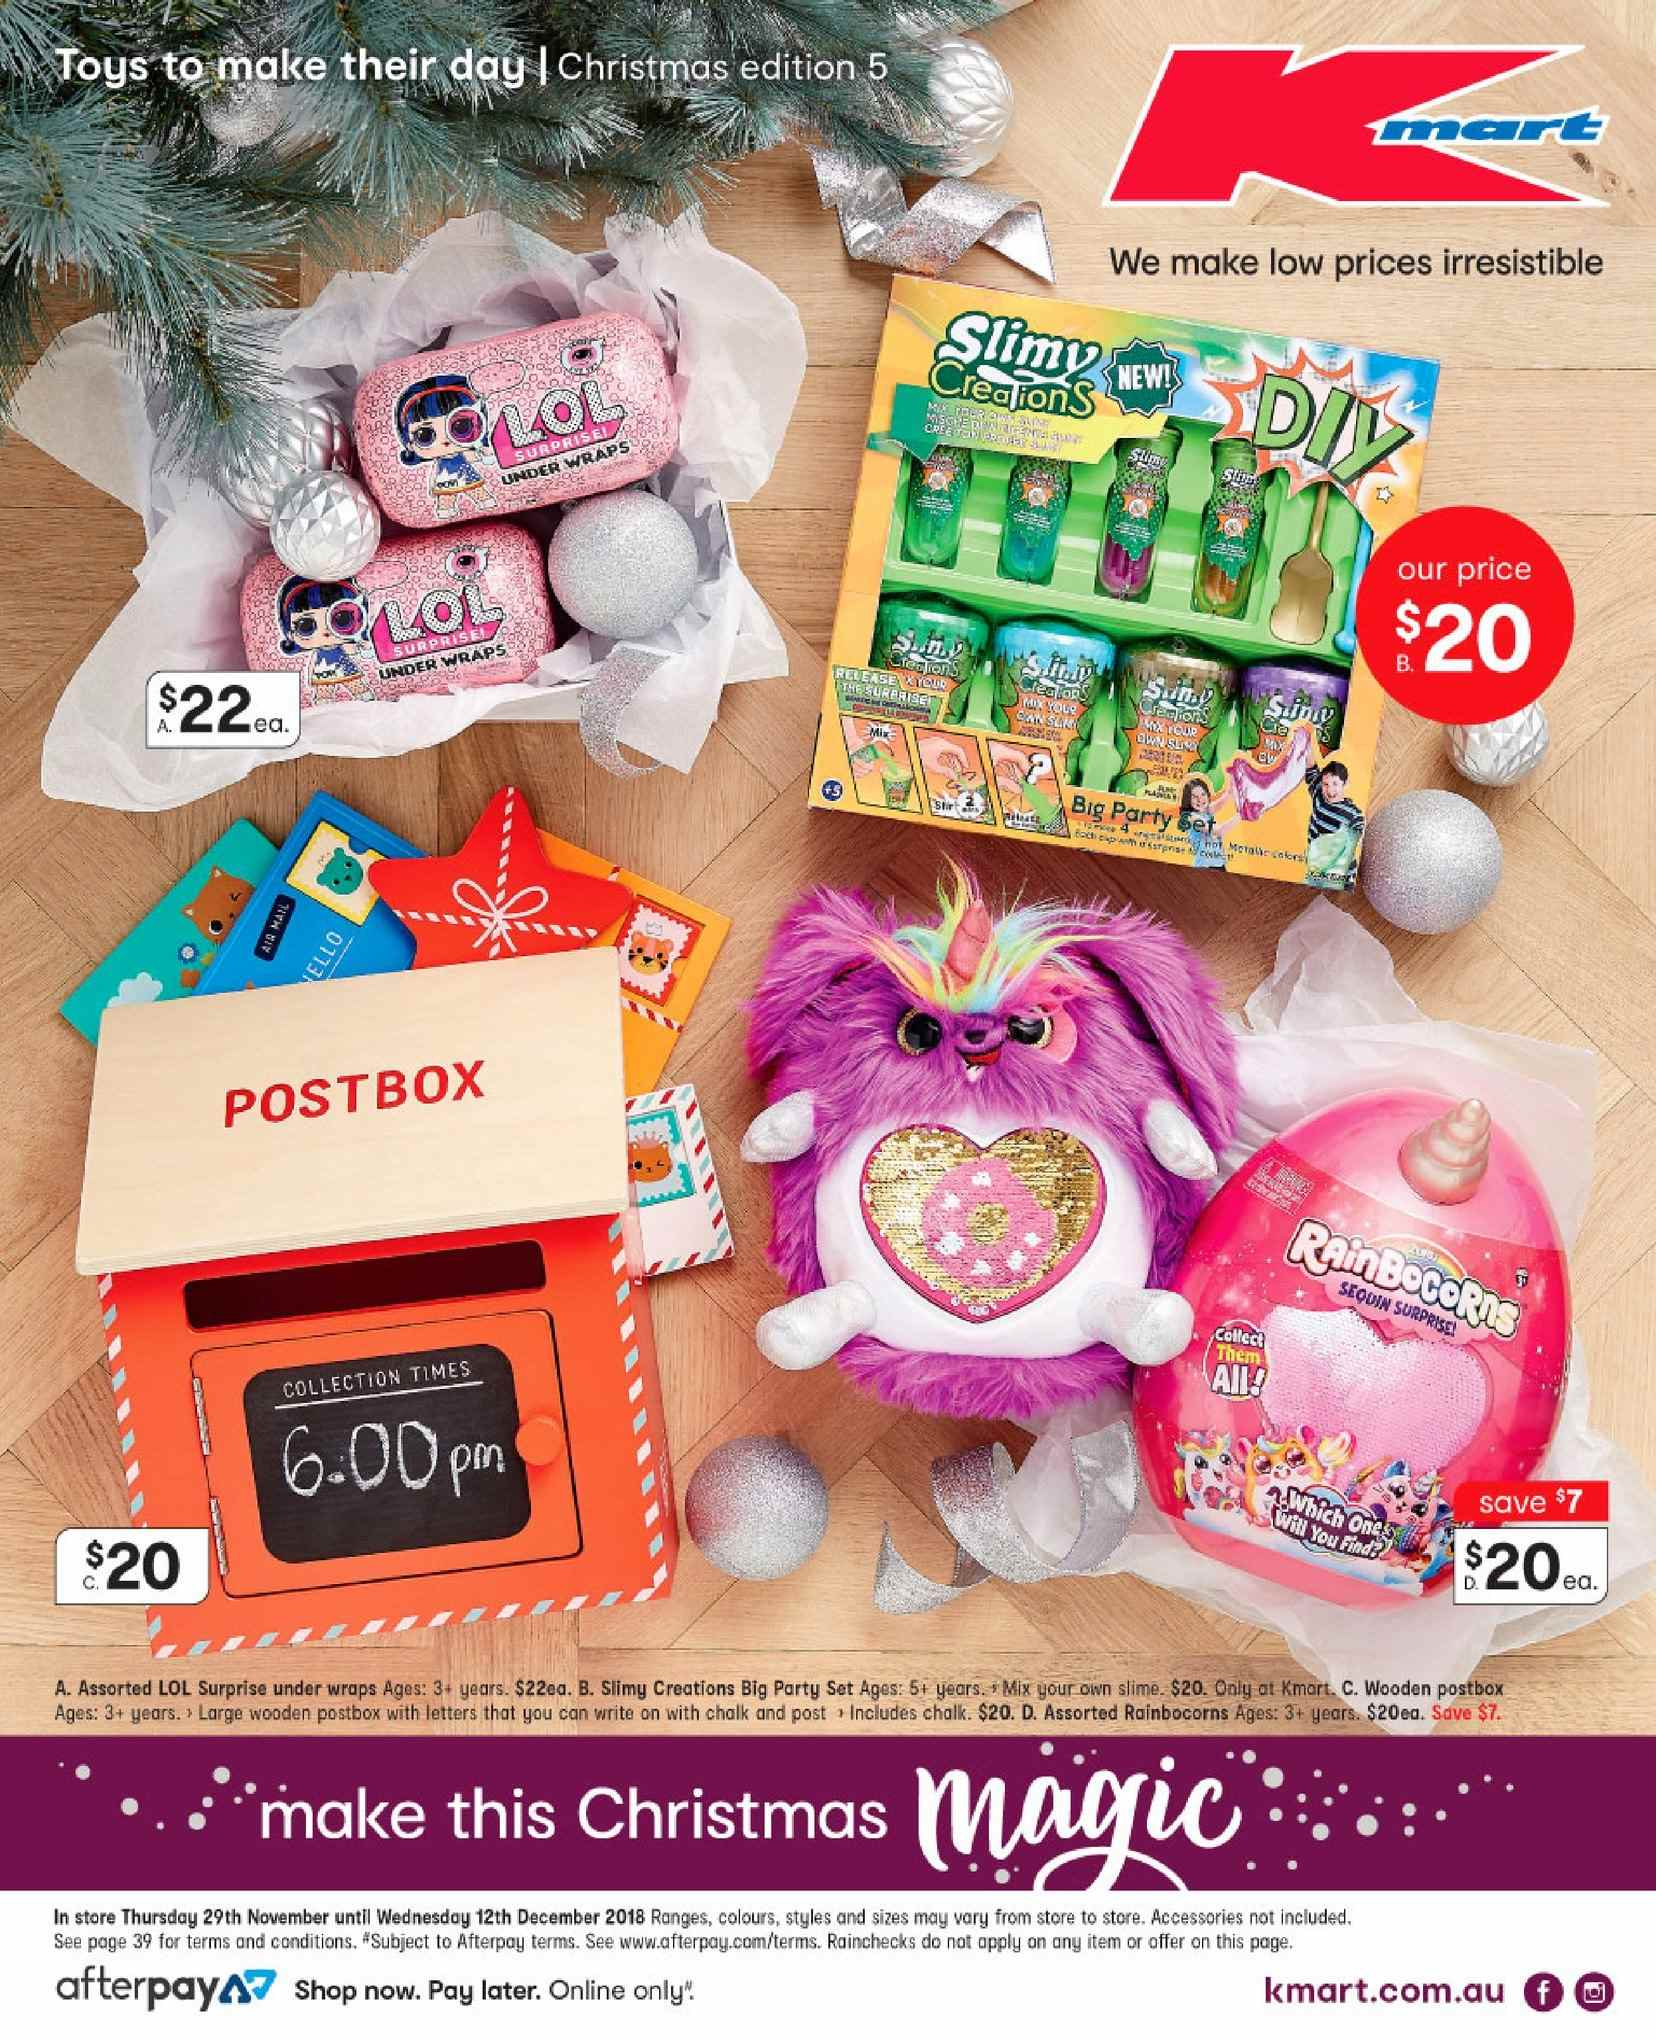 Is Kmart Open On Christmas Day.Kmart Catalogue And Weekly Specials 29 11 2018 12 12 2018